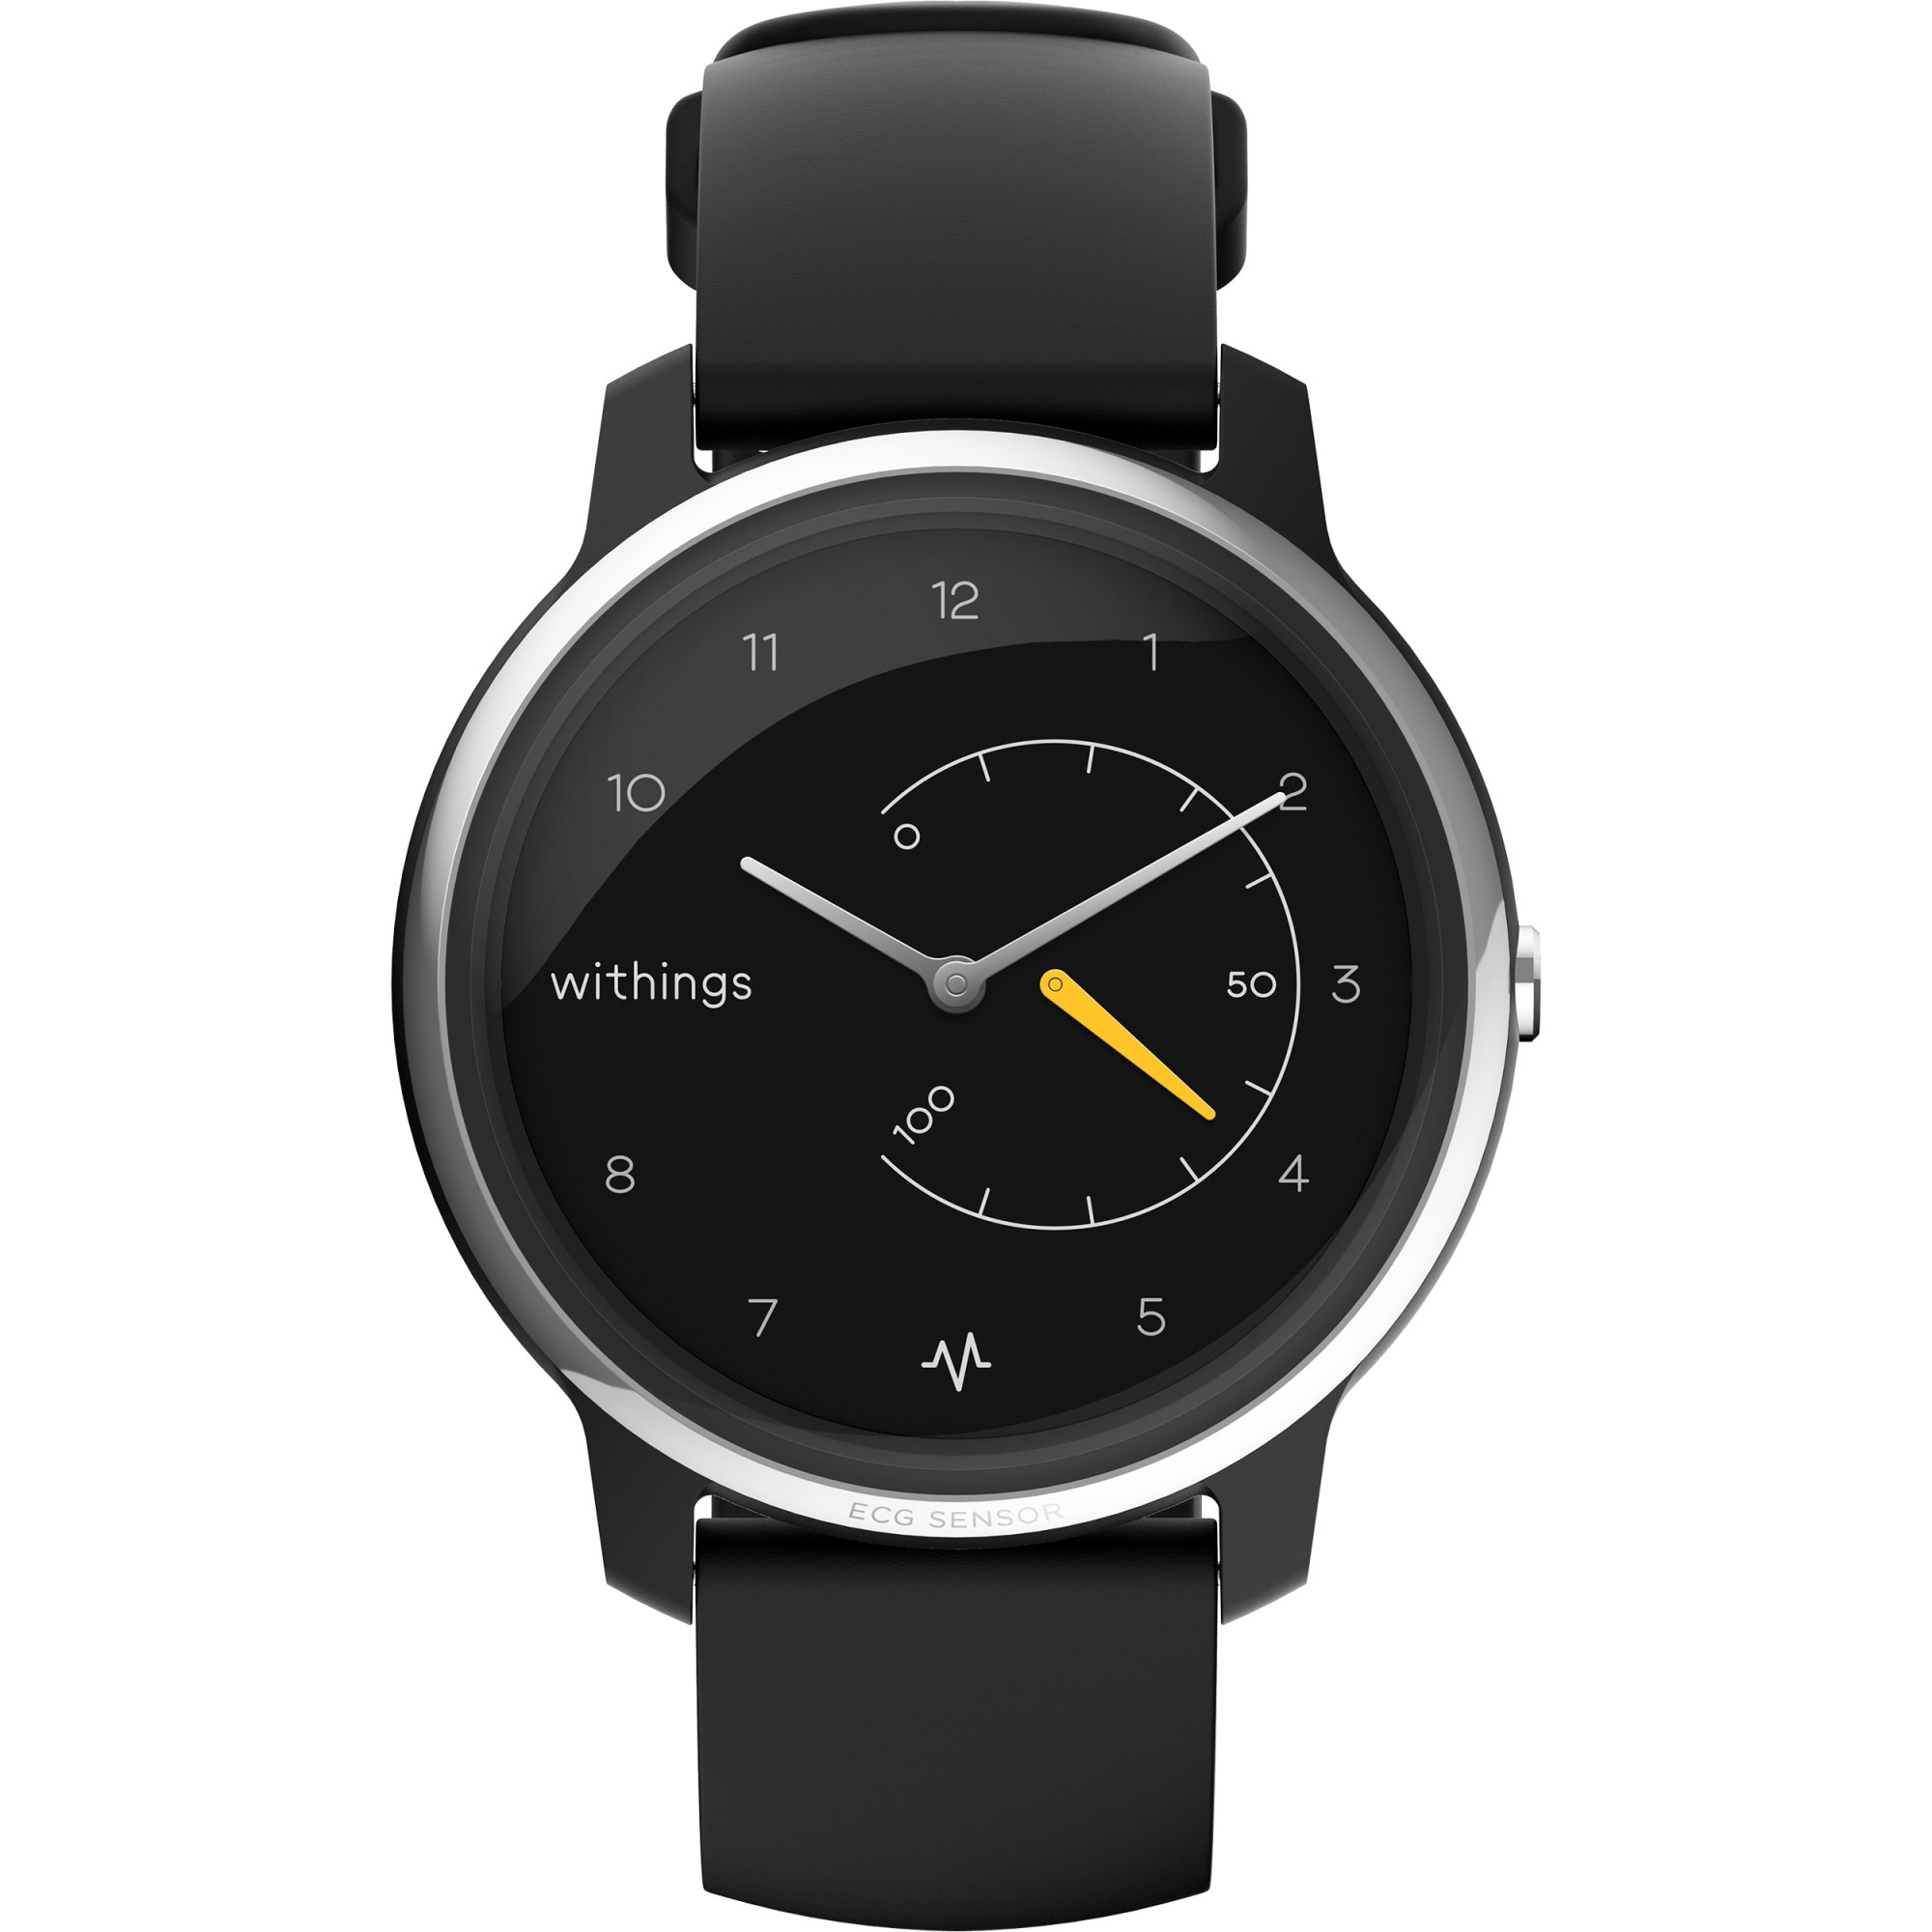 Fotografie Ceas smartwatch Withings Move ECG, Negru